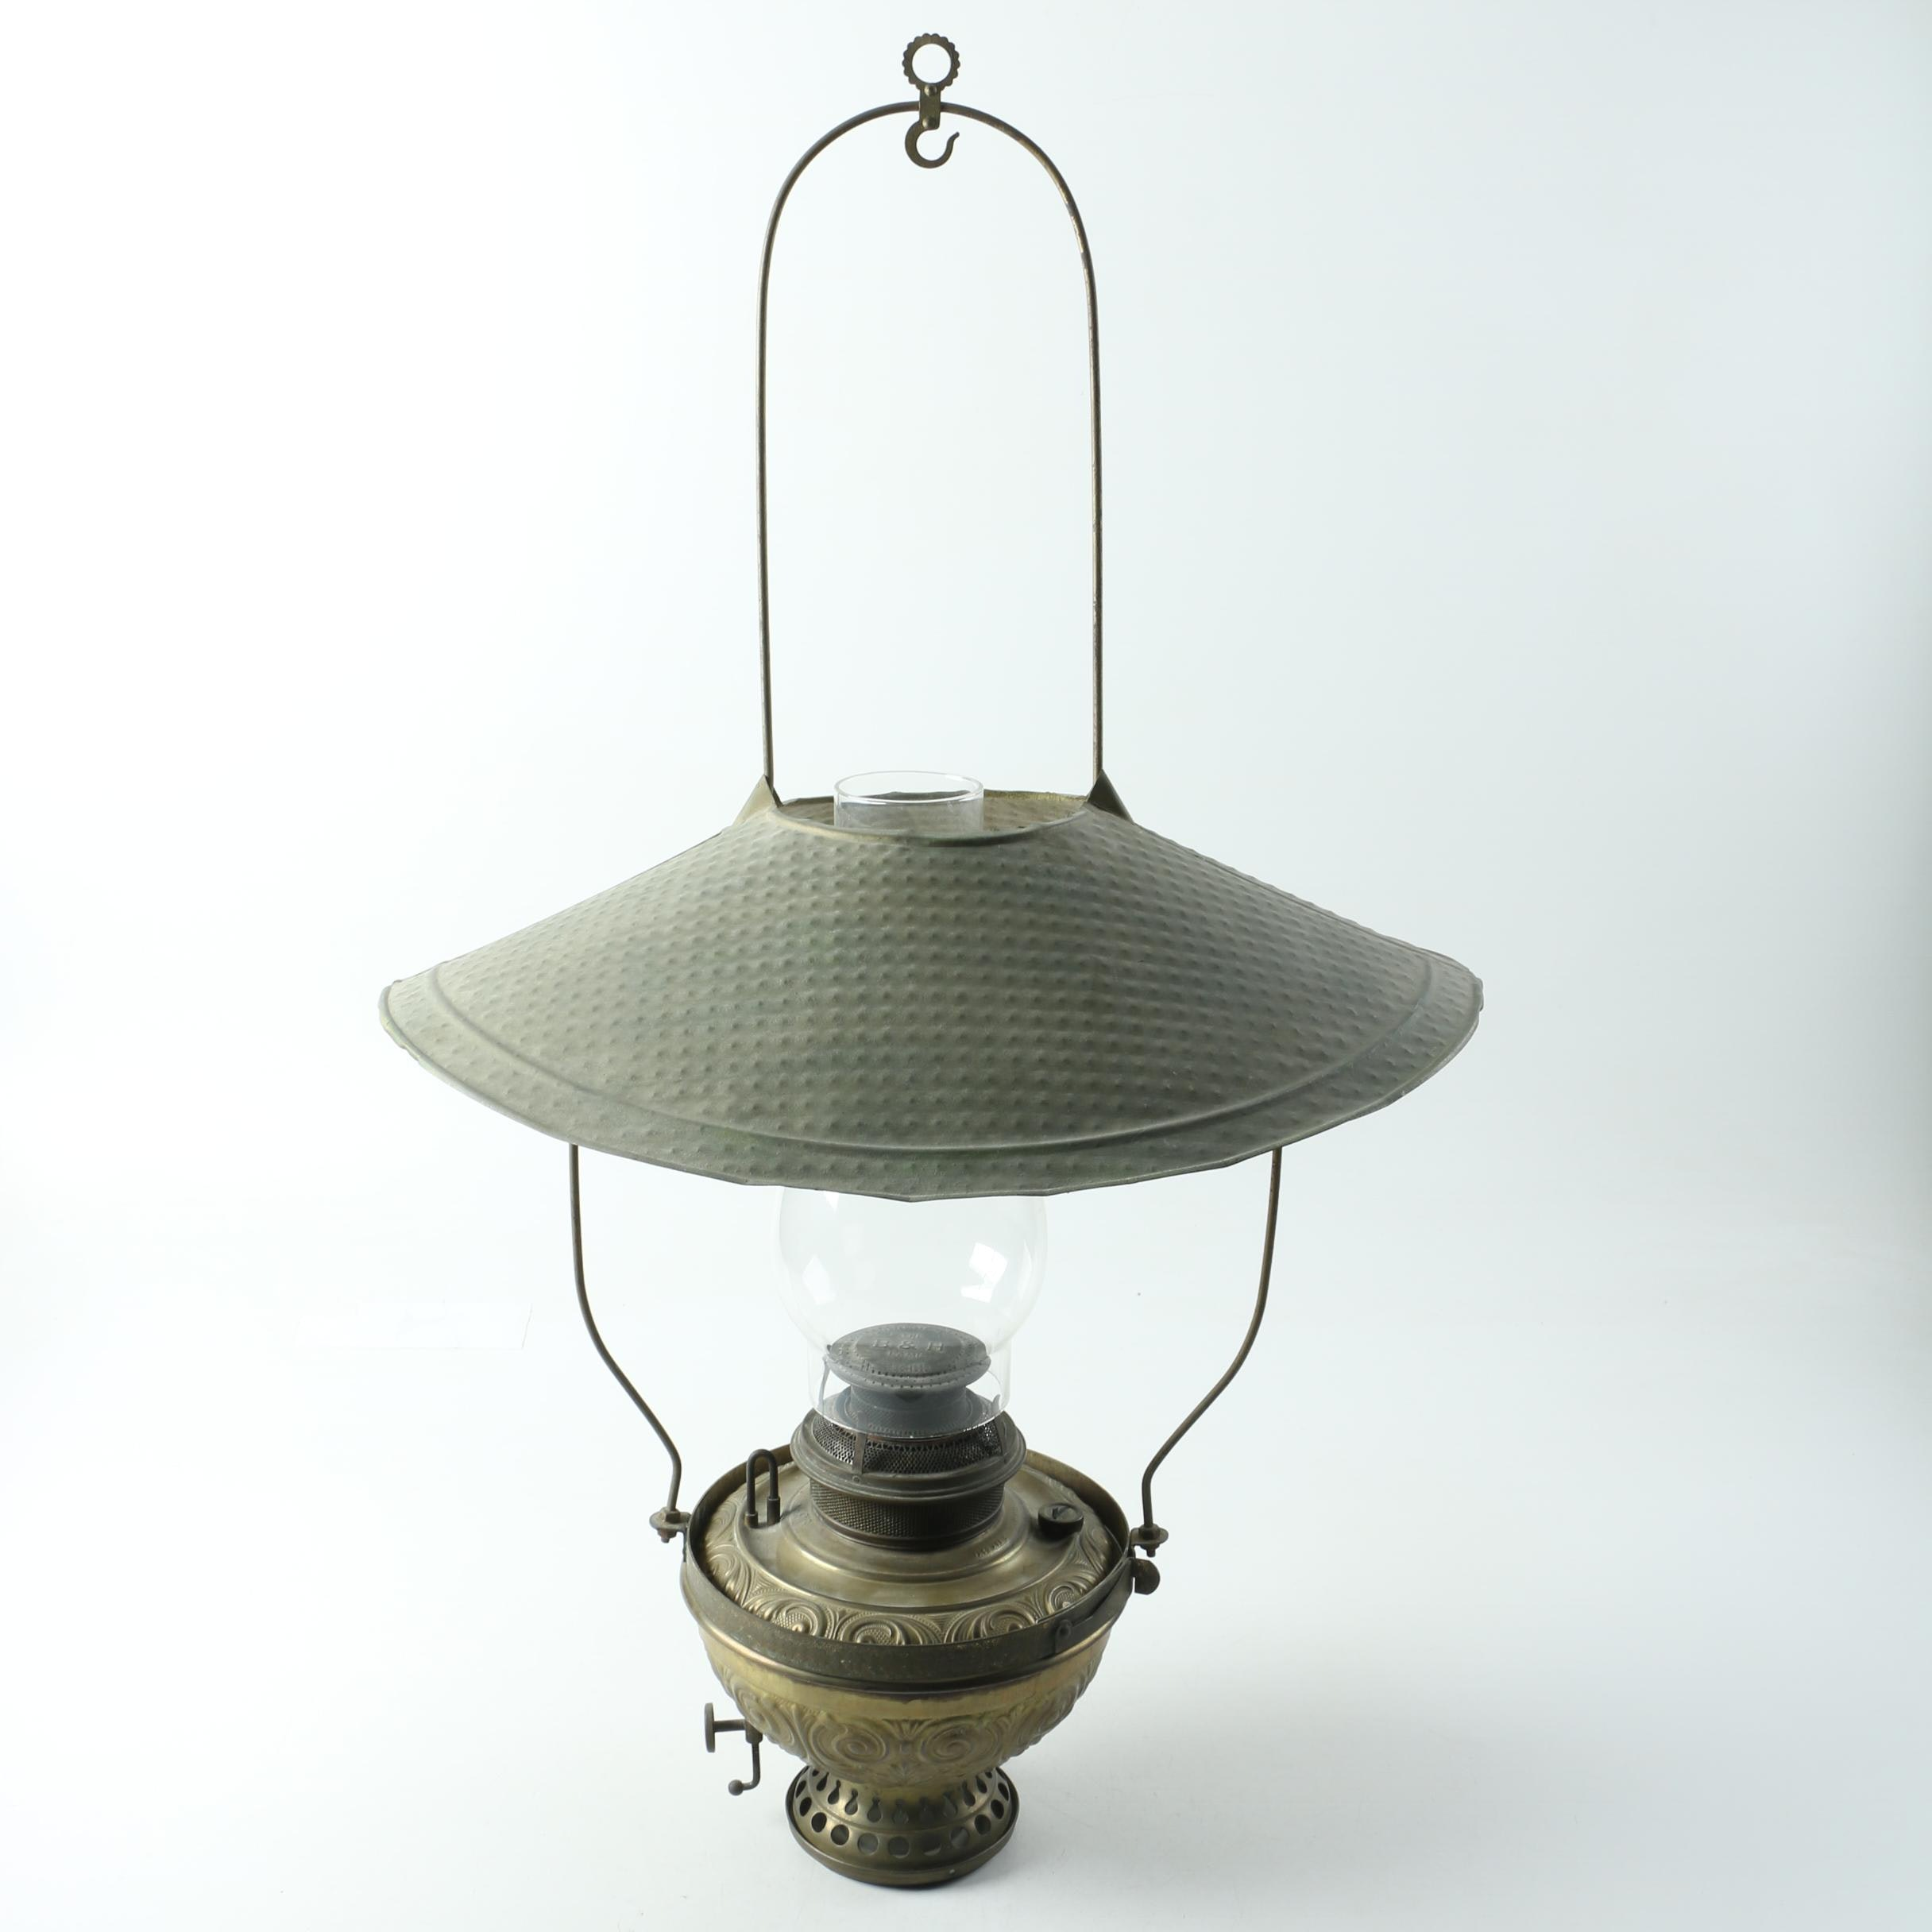 Bradley U0026 Hubbard Antique Brass Oil Lamp ...